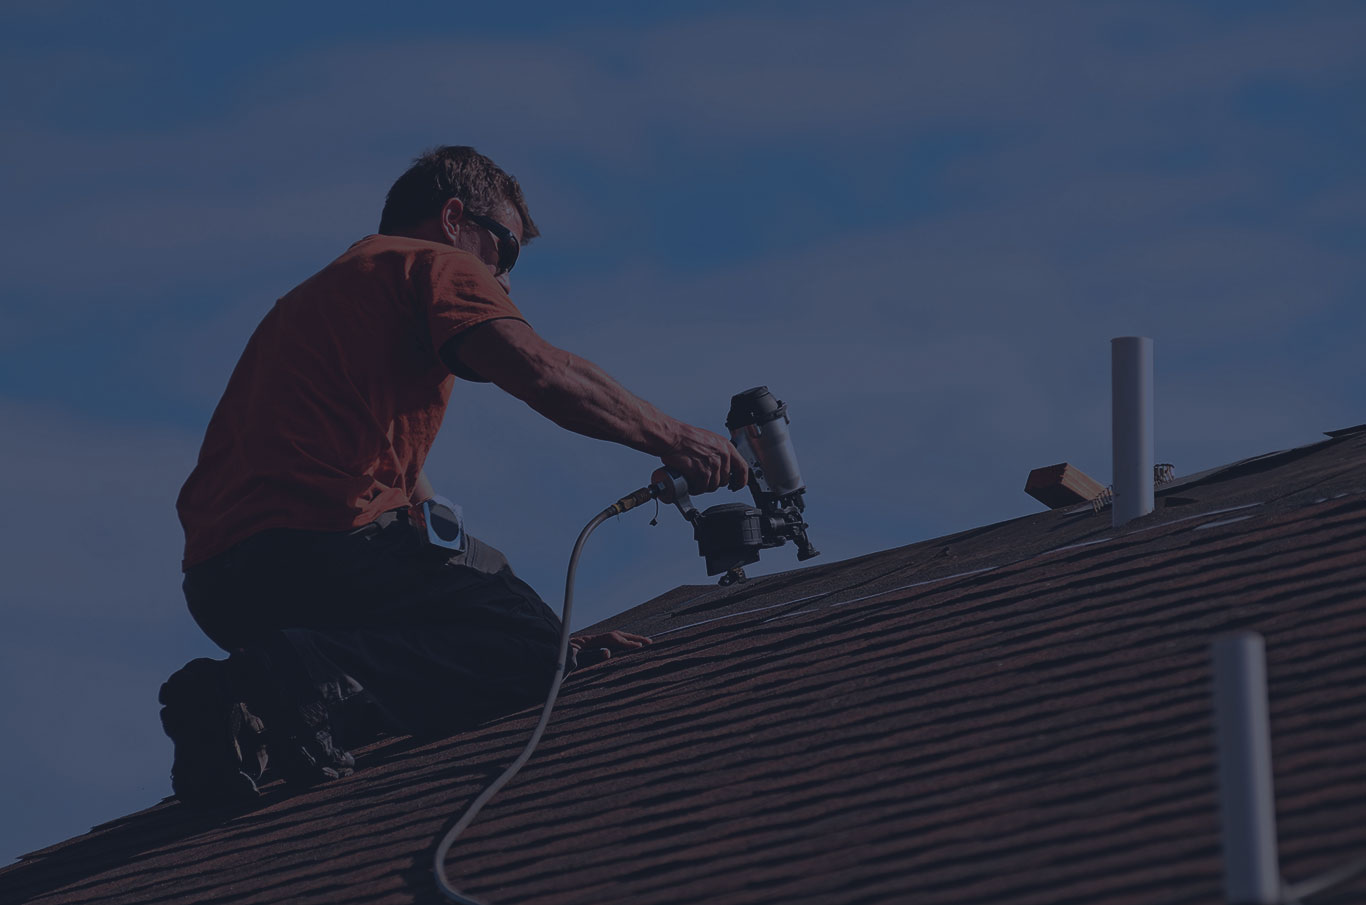 man installing shingle roof with a nail gun